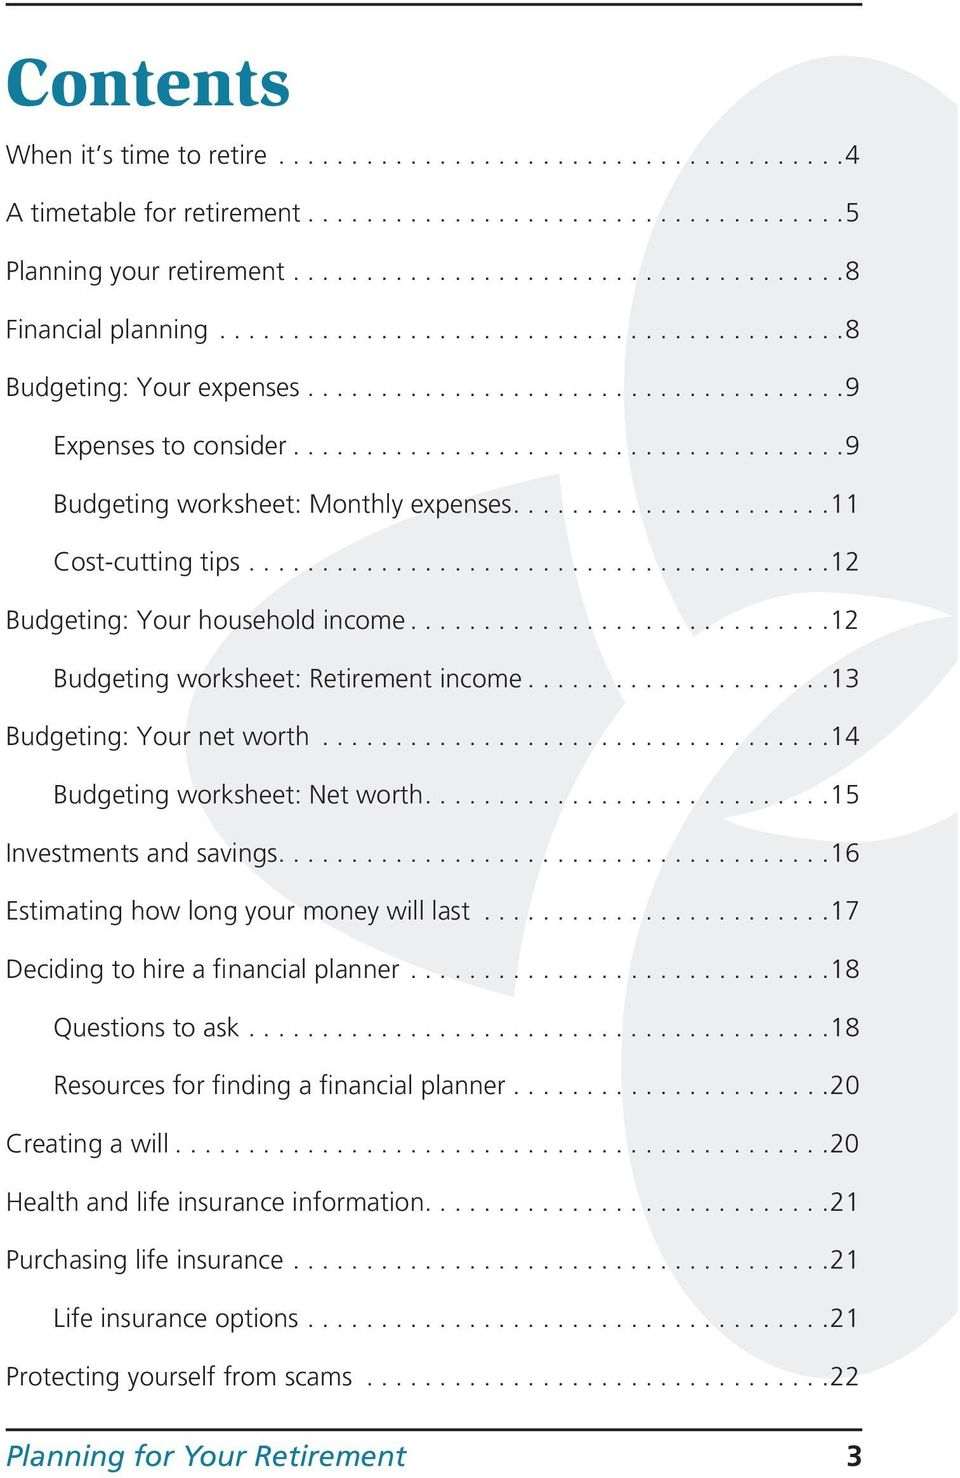 .....................11 Cost-cutting tips........................................12 Budgeting: Your household income.............................12 Budgeting worksheet: Retirement income.